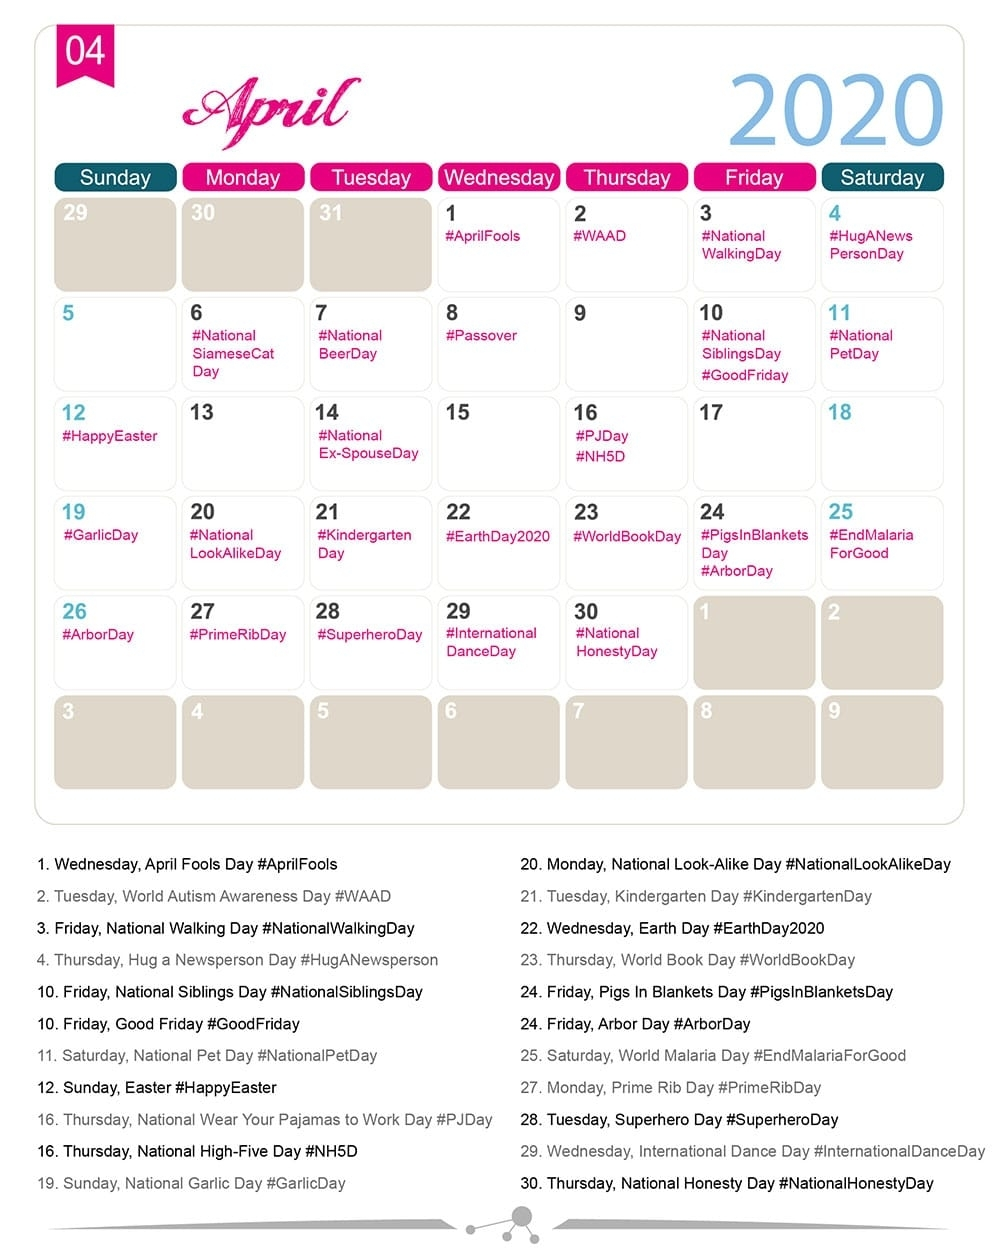 The 2020 Social Media Holiday Calendar - Make A Website Hub intended for Special Days On Calender For 2020